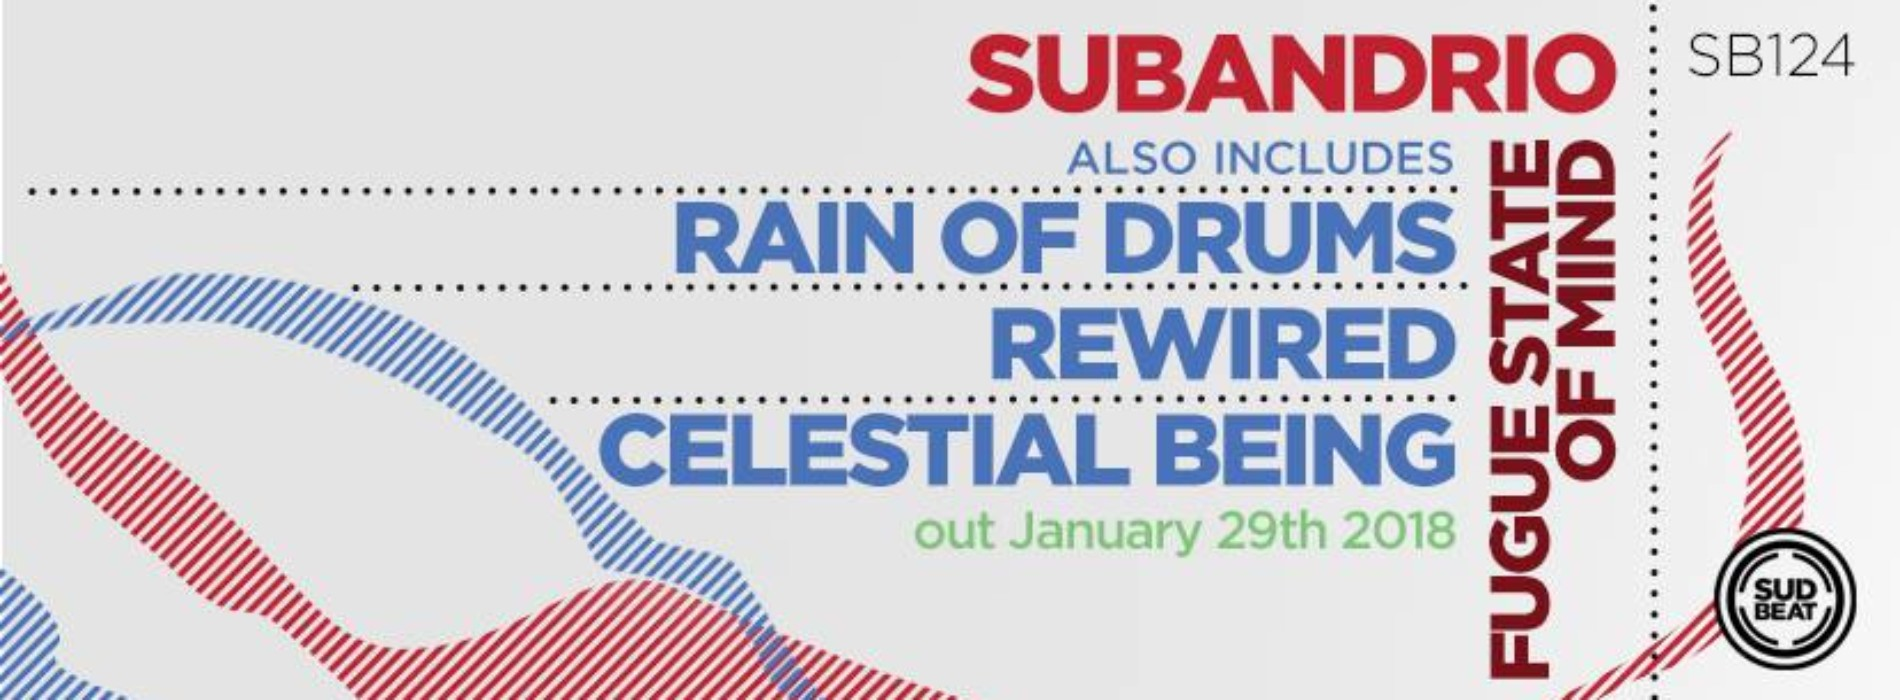 Subandrio Has A Release On Sudbeat